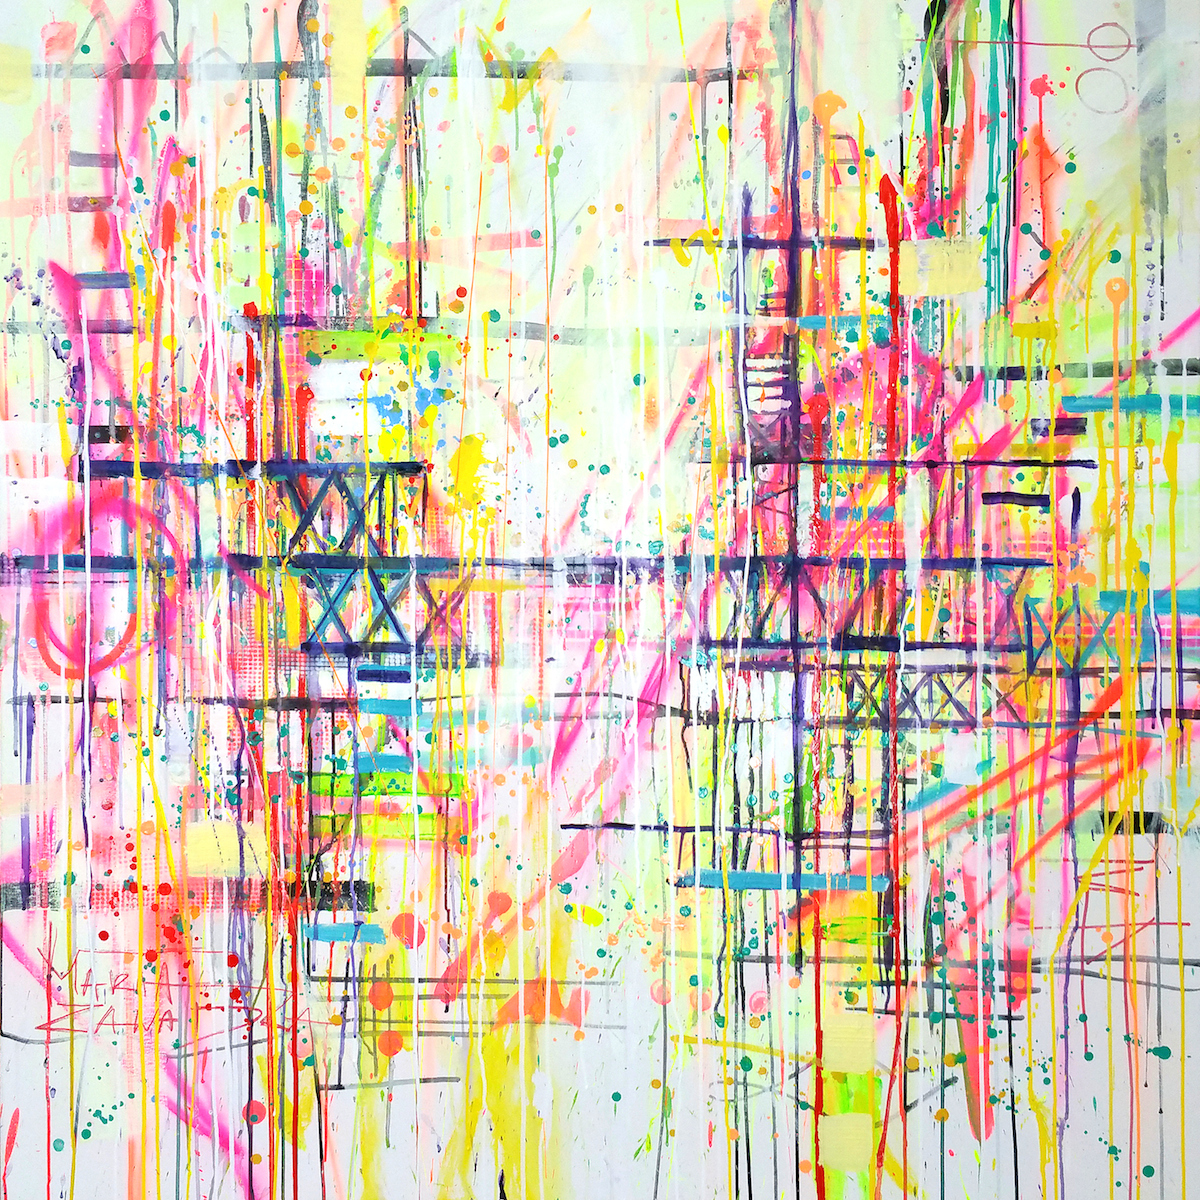 """Somewhere in Signapore"" Acrylic, Ink and Spray Paint on Canvas. 120 x 120 cm. Ready to hang."